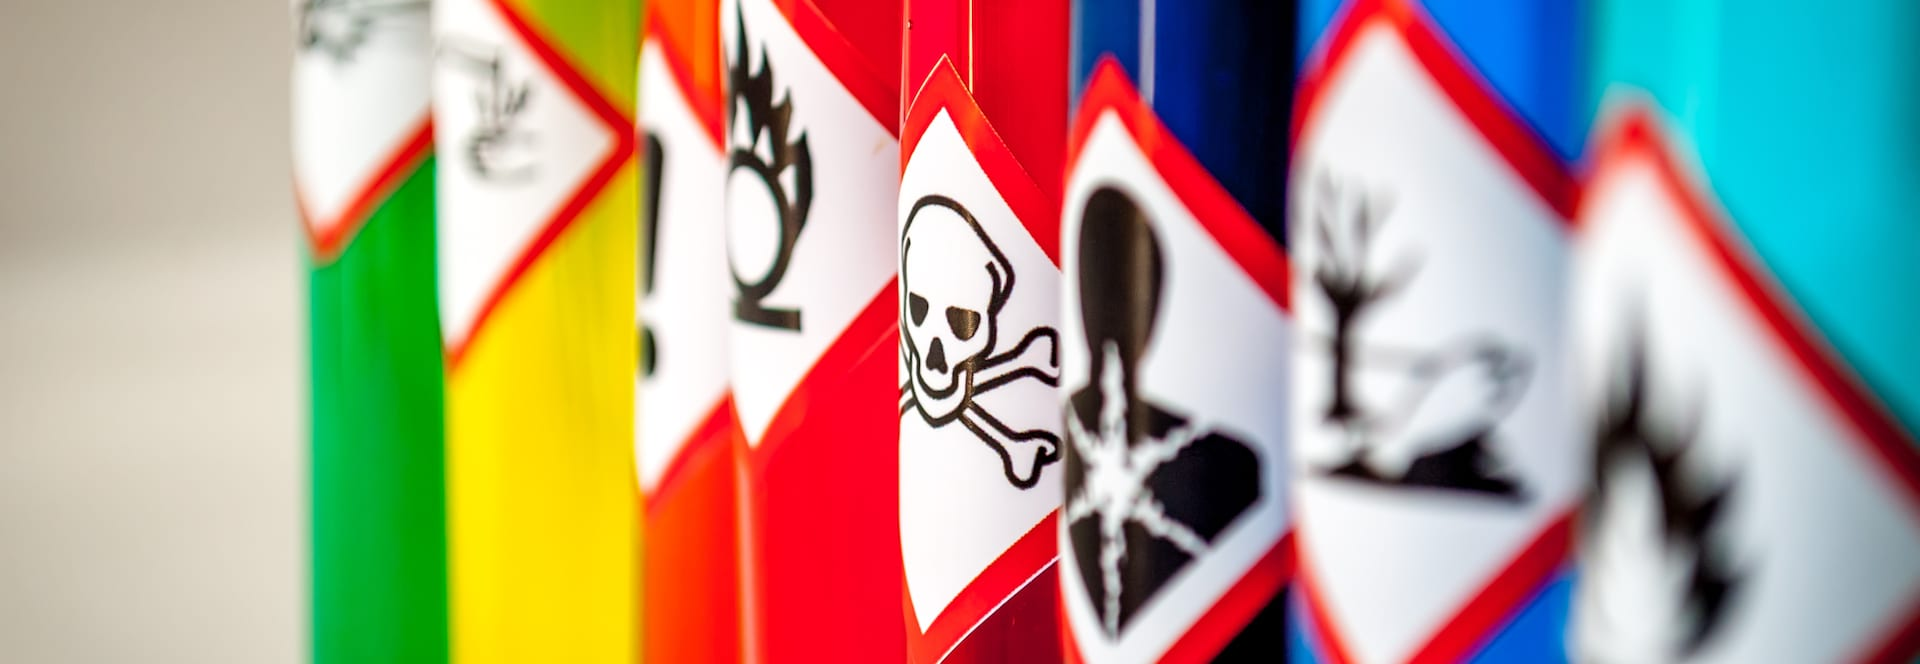 ARE YOU A VICTIM OF WORKPLACE TOXINS?